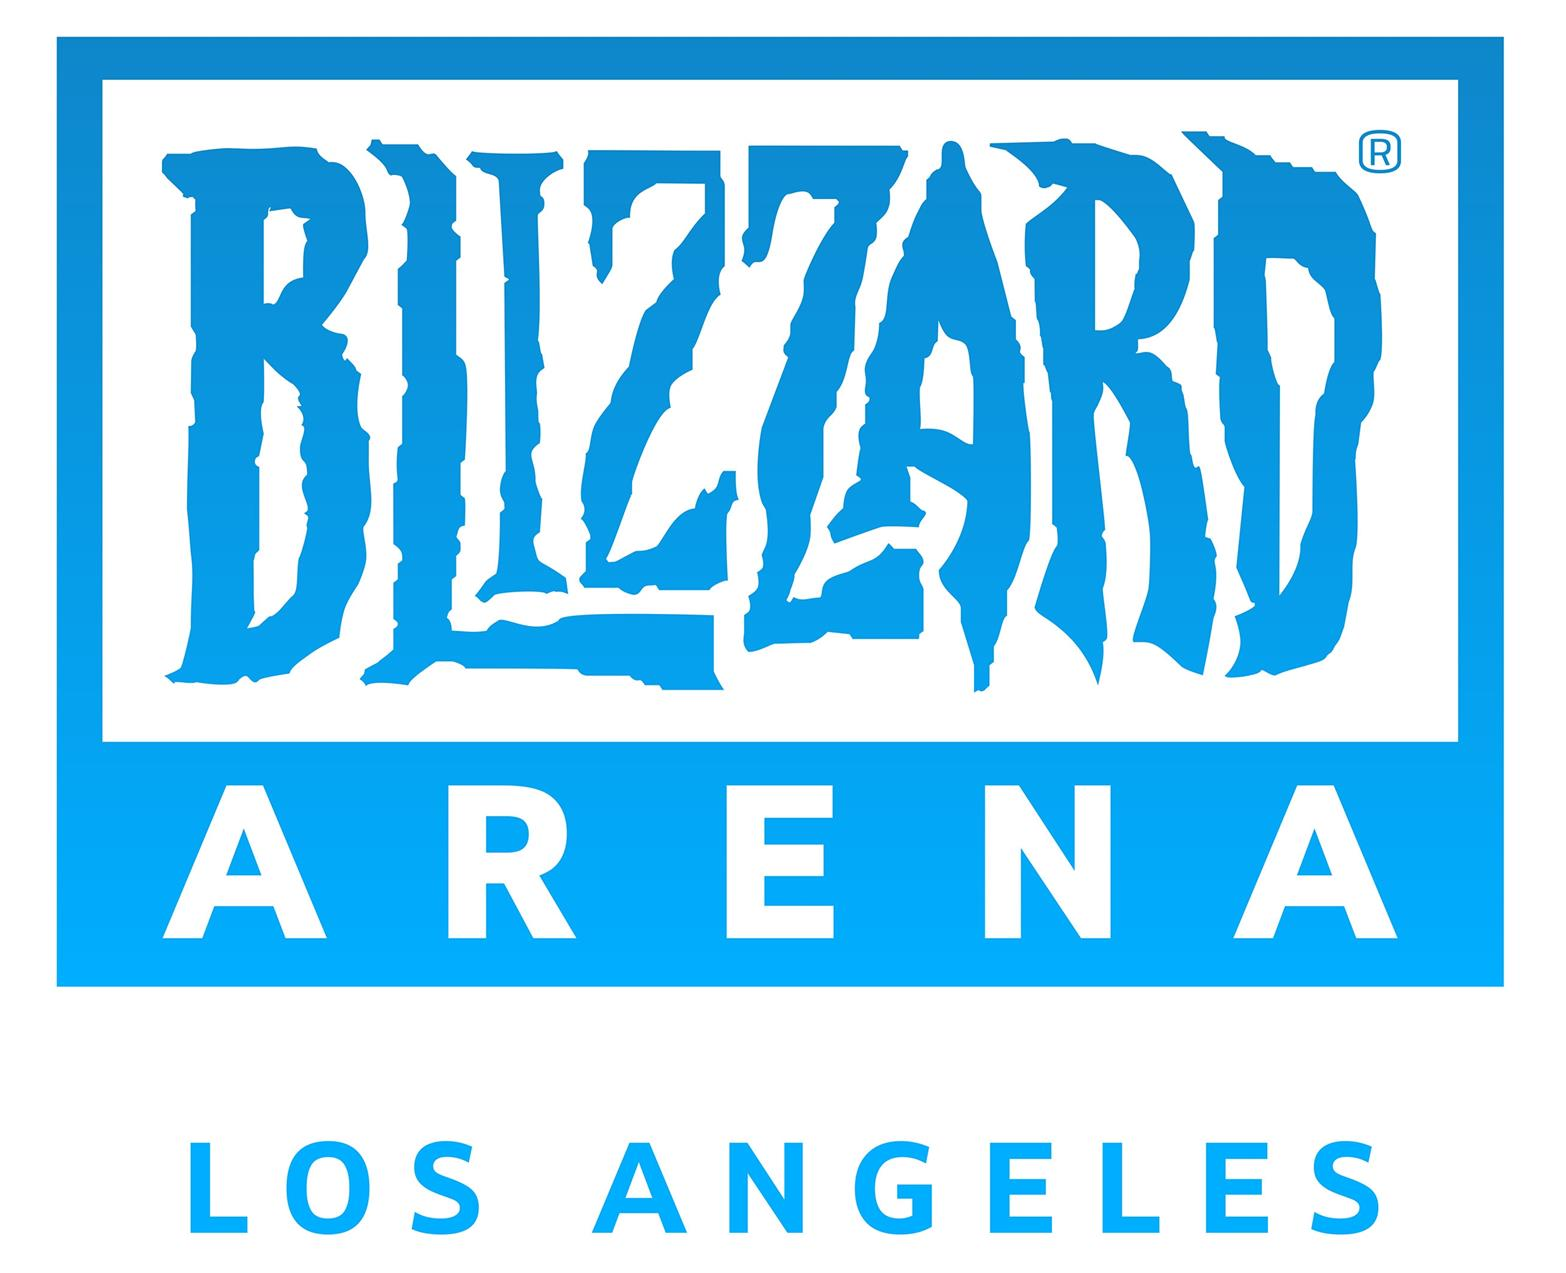 blizzard_arena_los_angeles_1